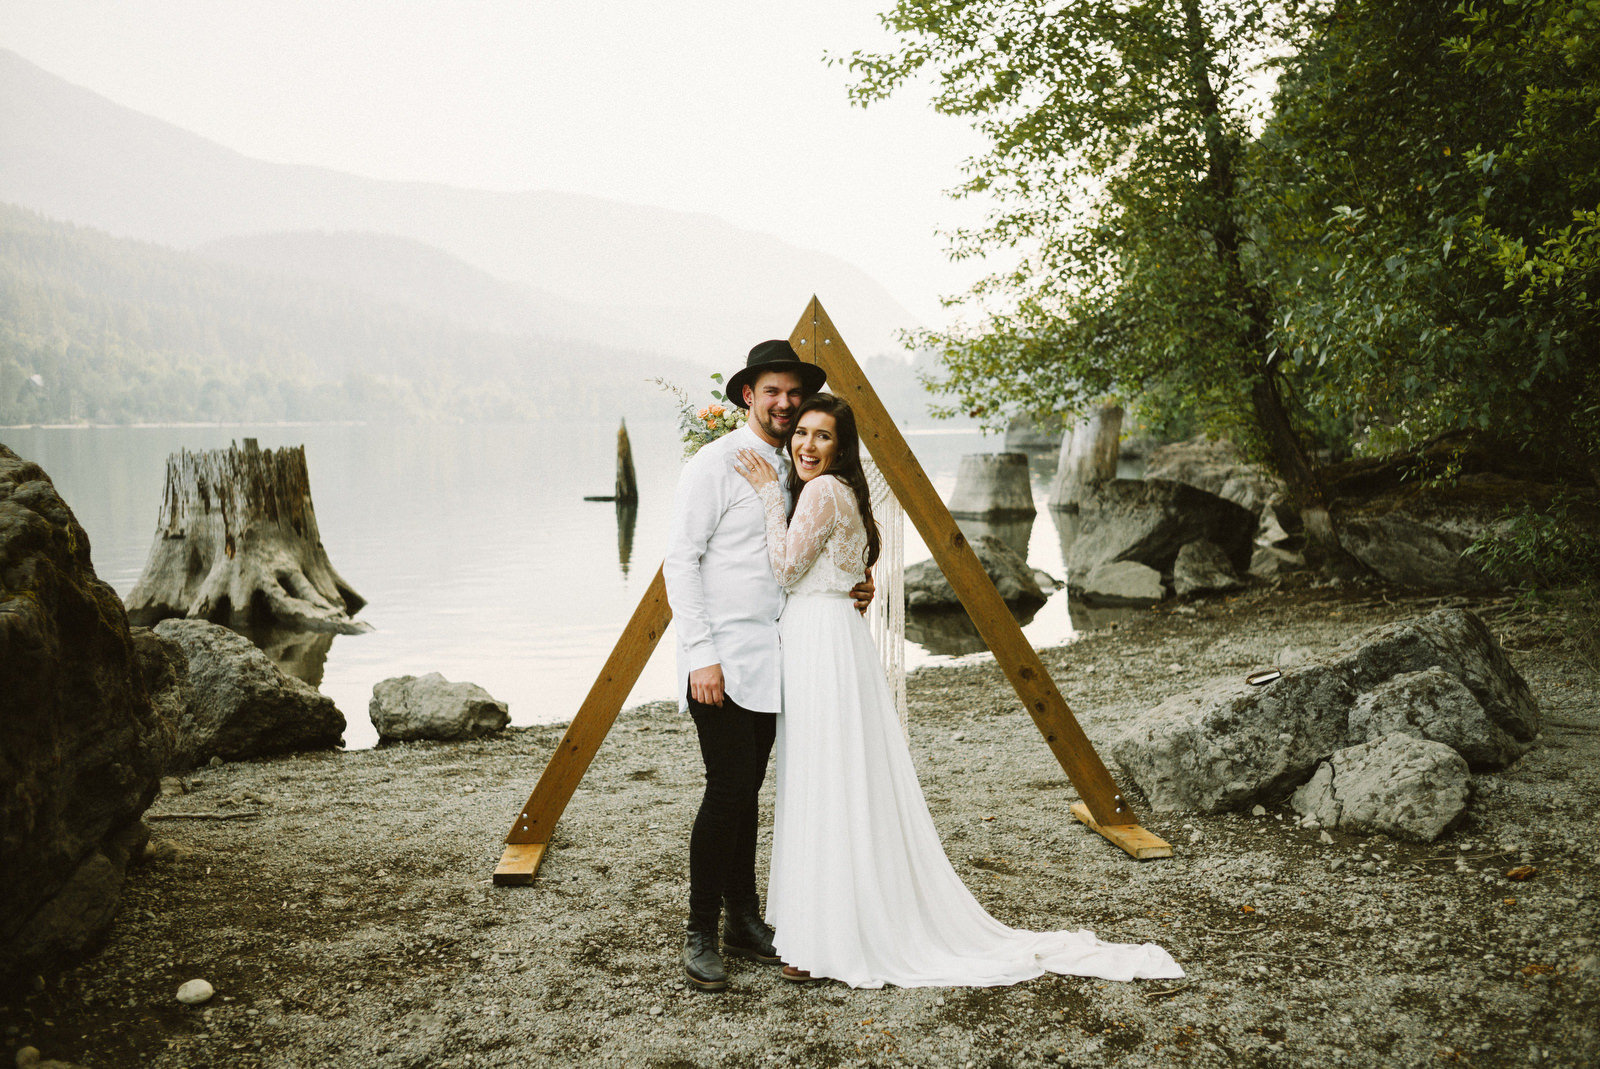 athena-and-camron-seattle-elopement-wedding-benj-haisch-rattlesnake-lake-christian-couple-goals61